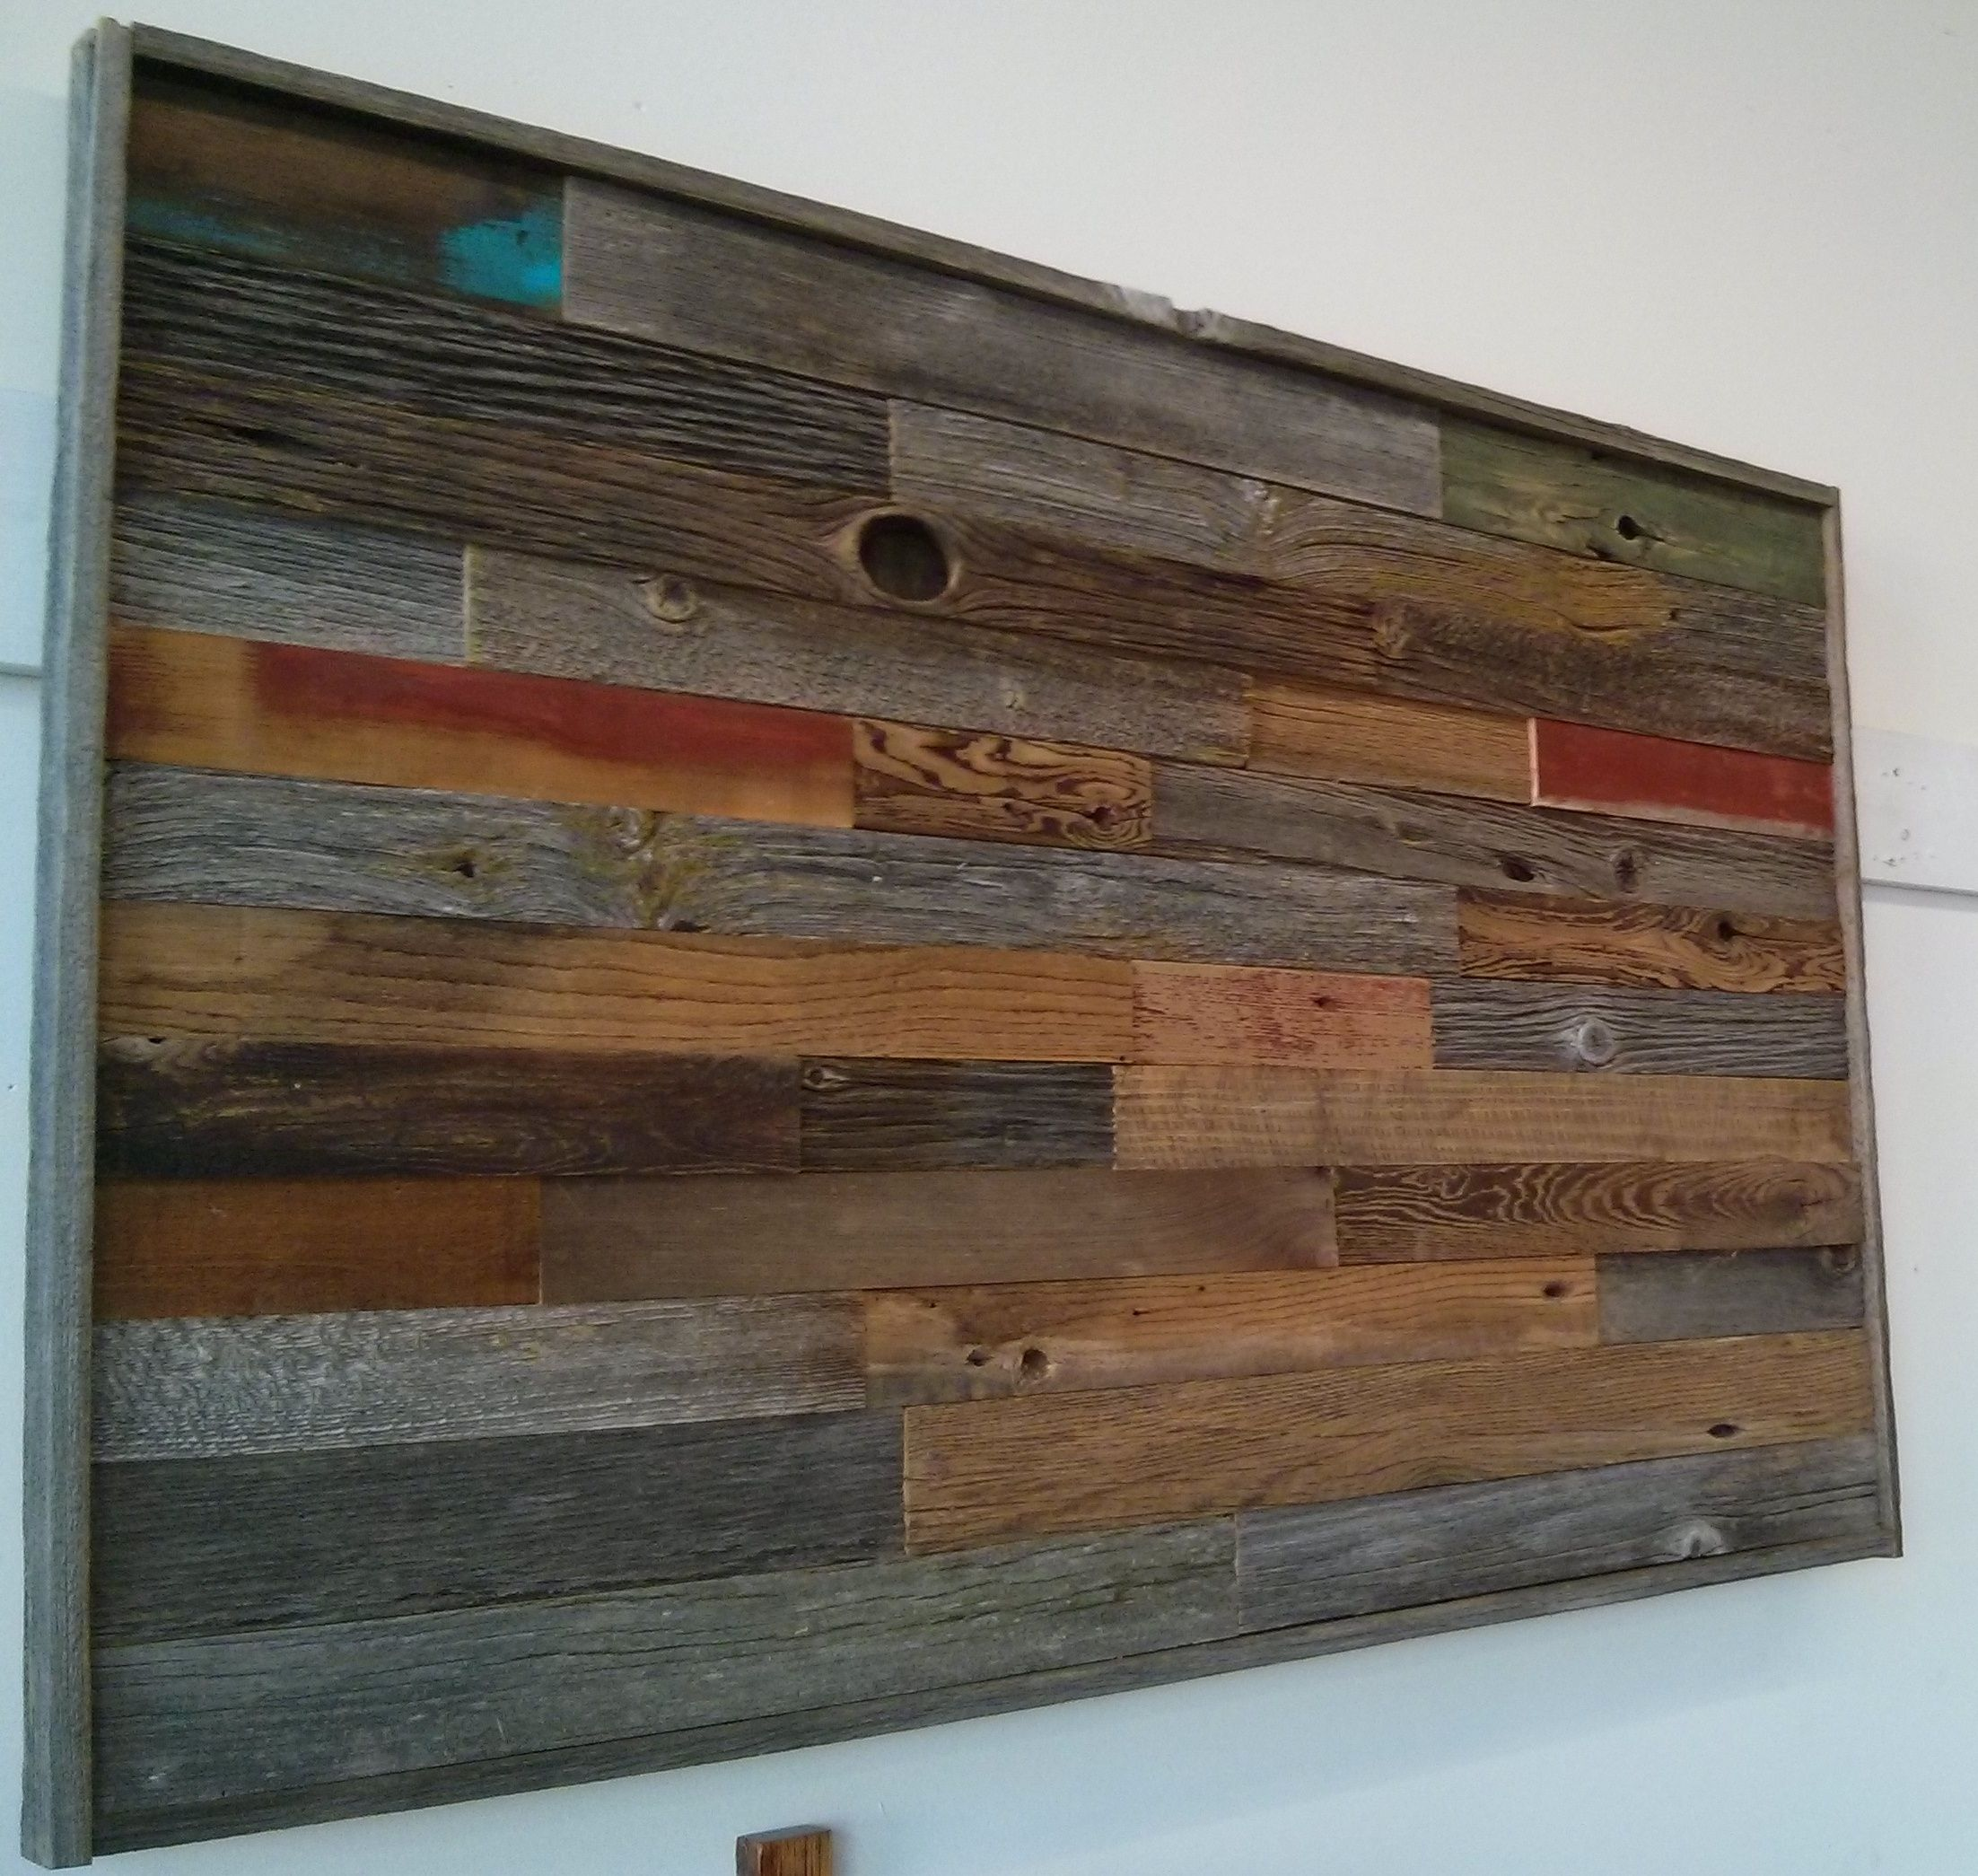 Reclaimed barn board mosaic wall art by barnboardstore.com ...